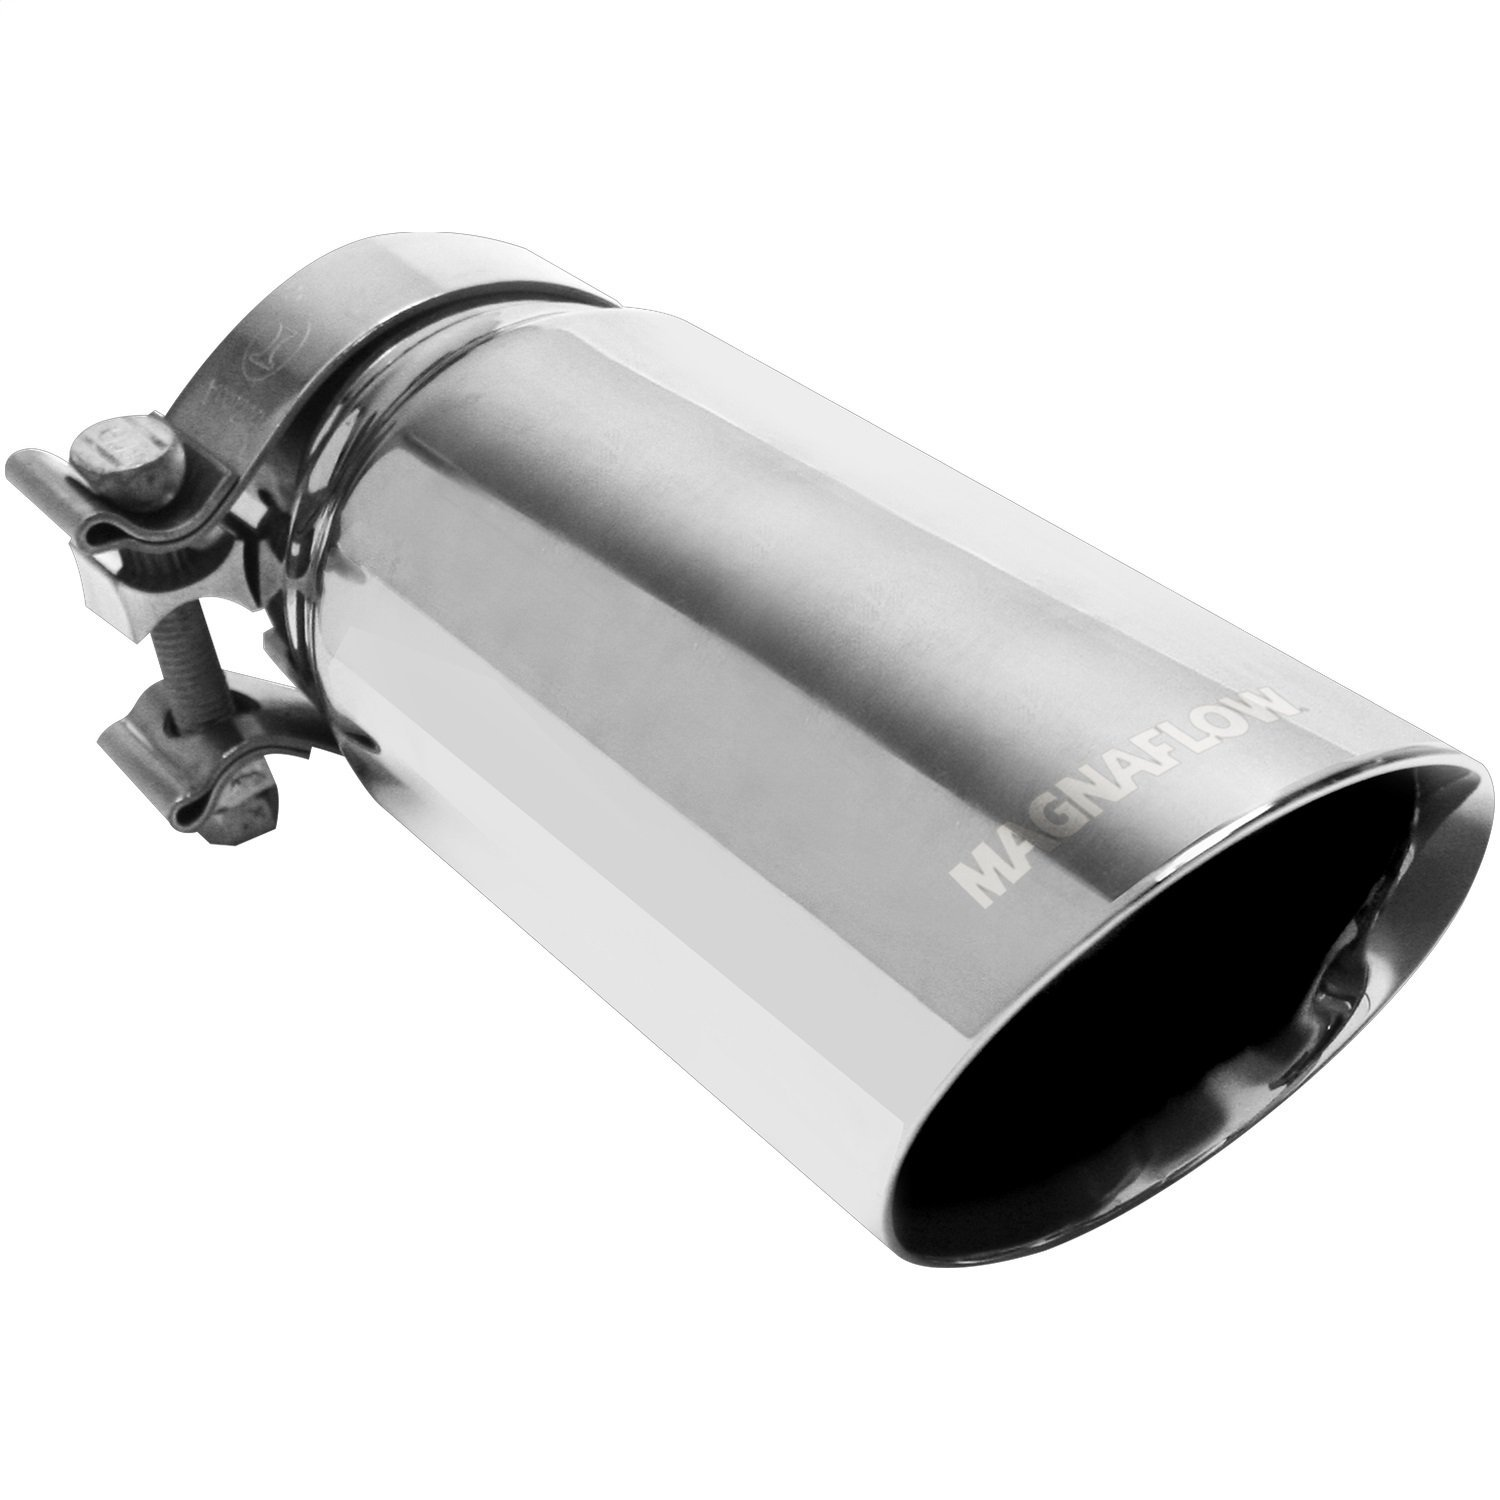 Magnaflow 35210 Stainless Steel 3.5' Exhaust Tip MagnaFlow Exhaust Products